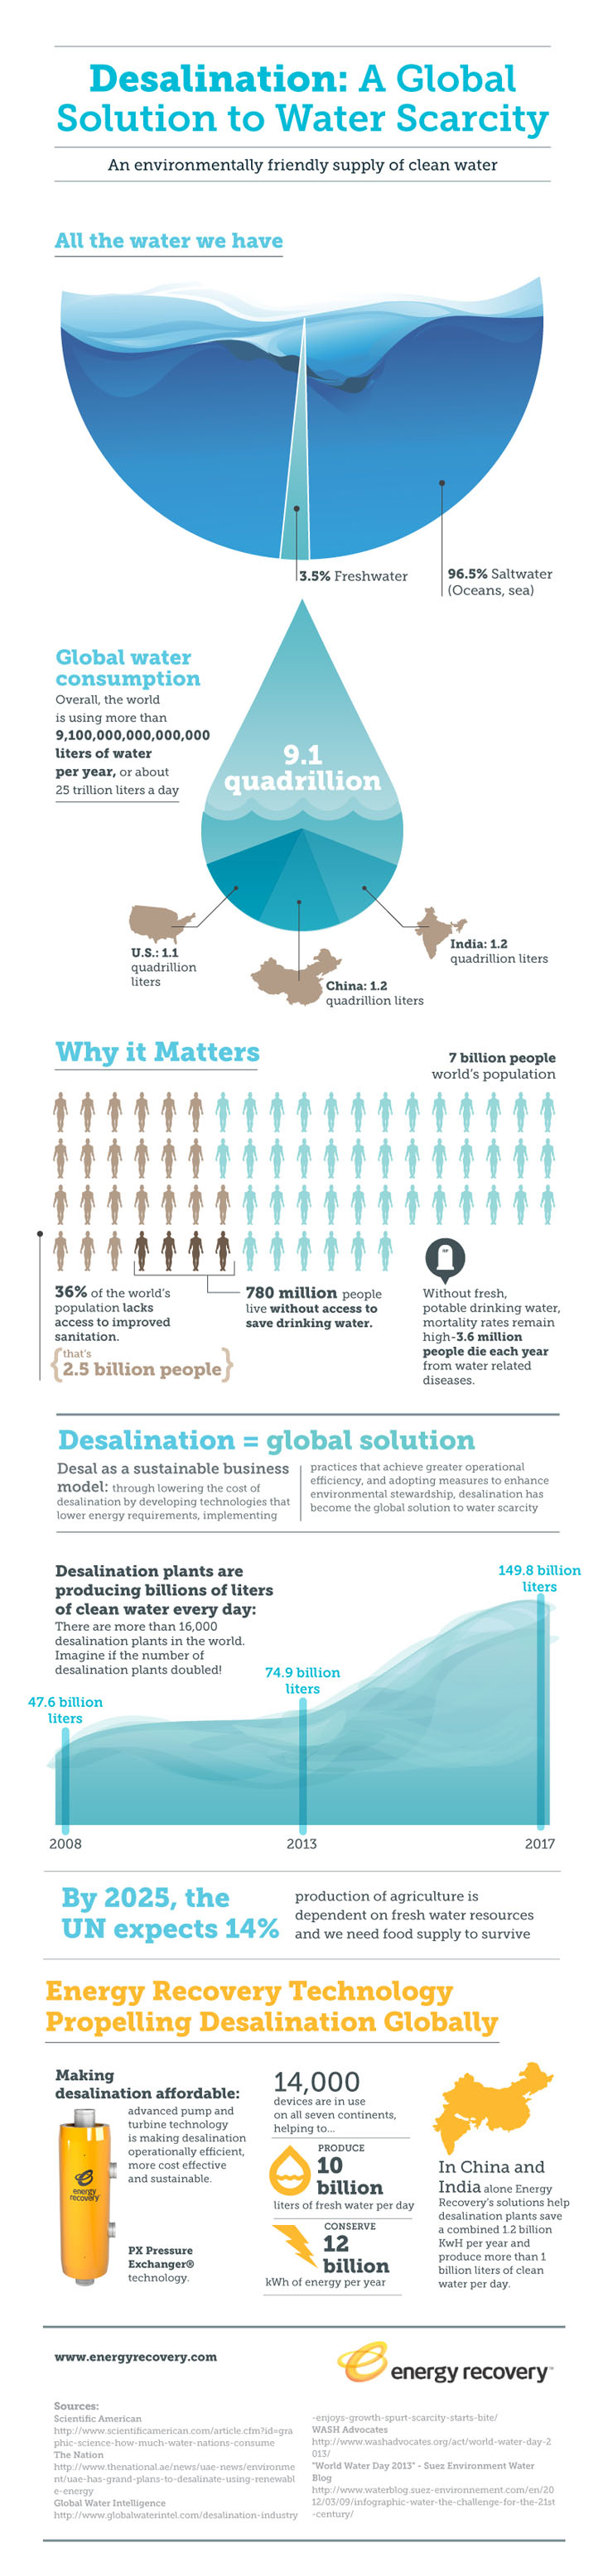 Infographic Energy Efficient Desalination Could Provide Clean